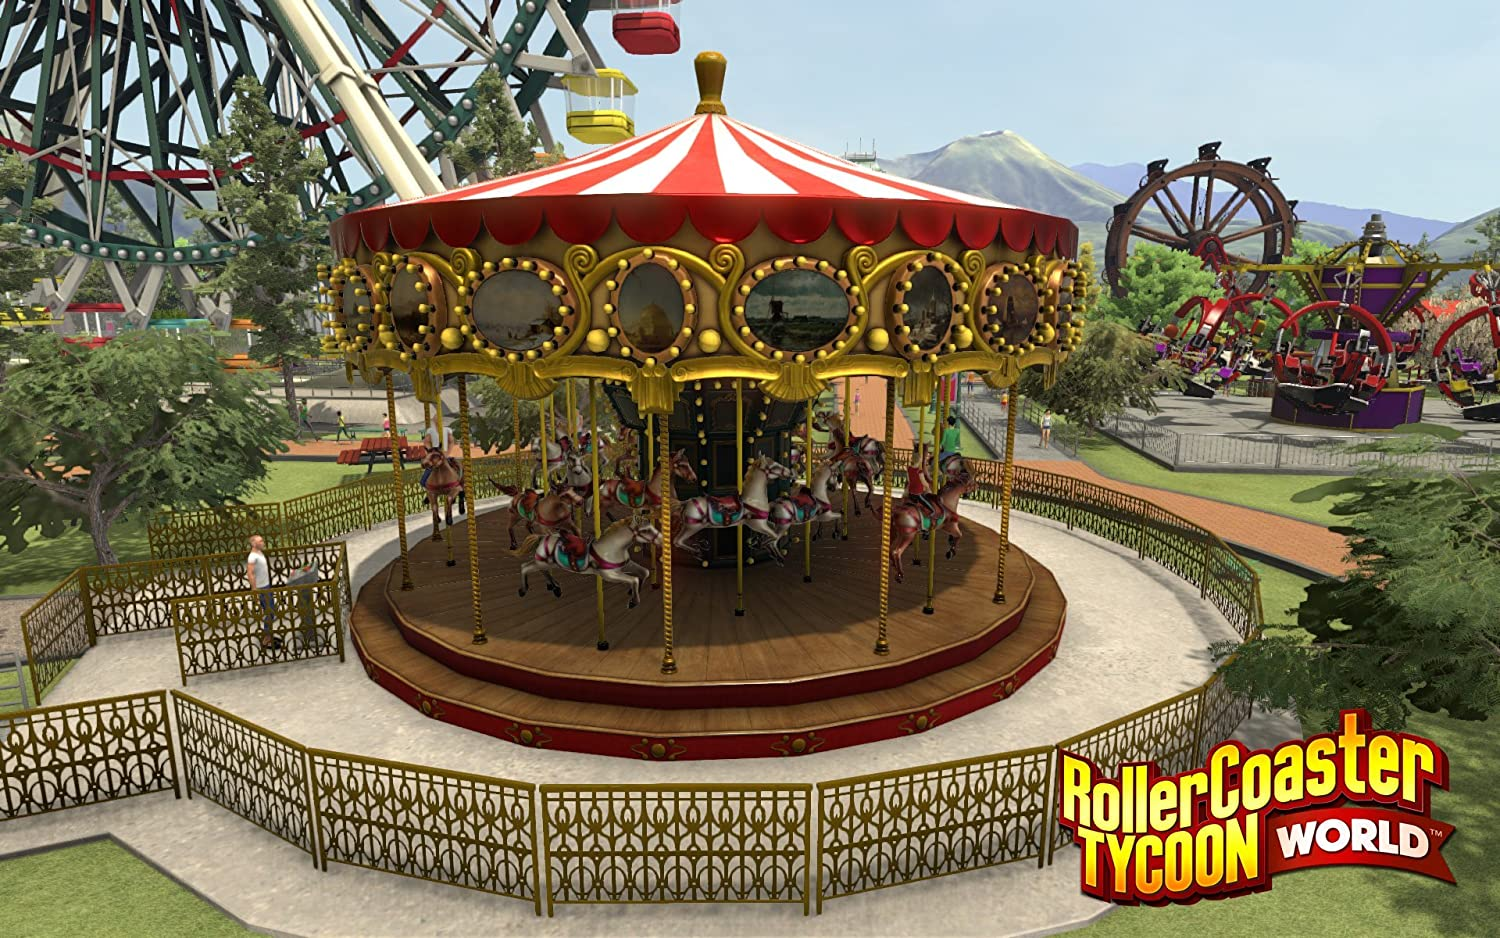 Amazon com: RollerCoaster Tycoon World PC DVD: Video Games